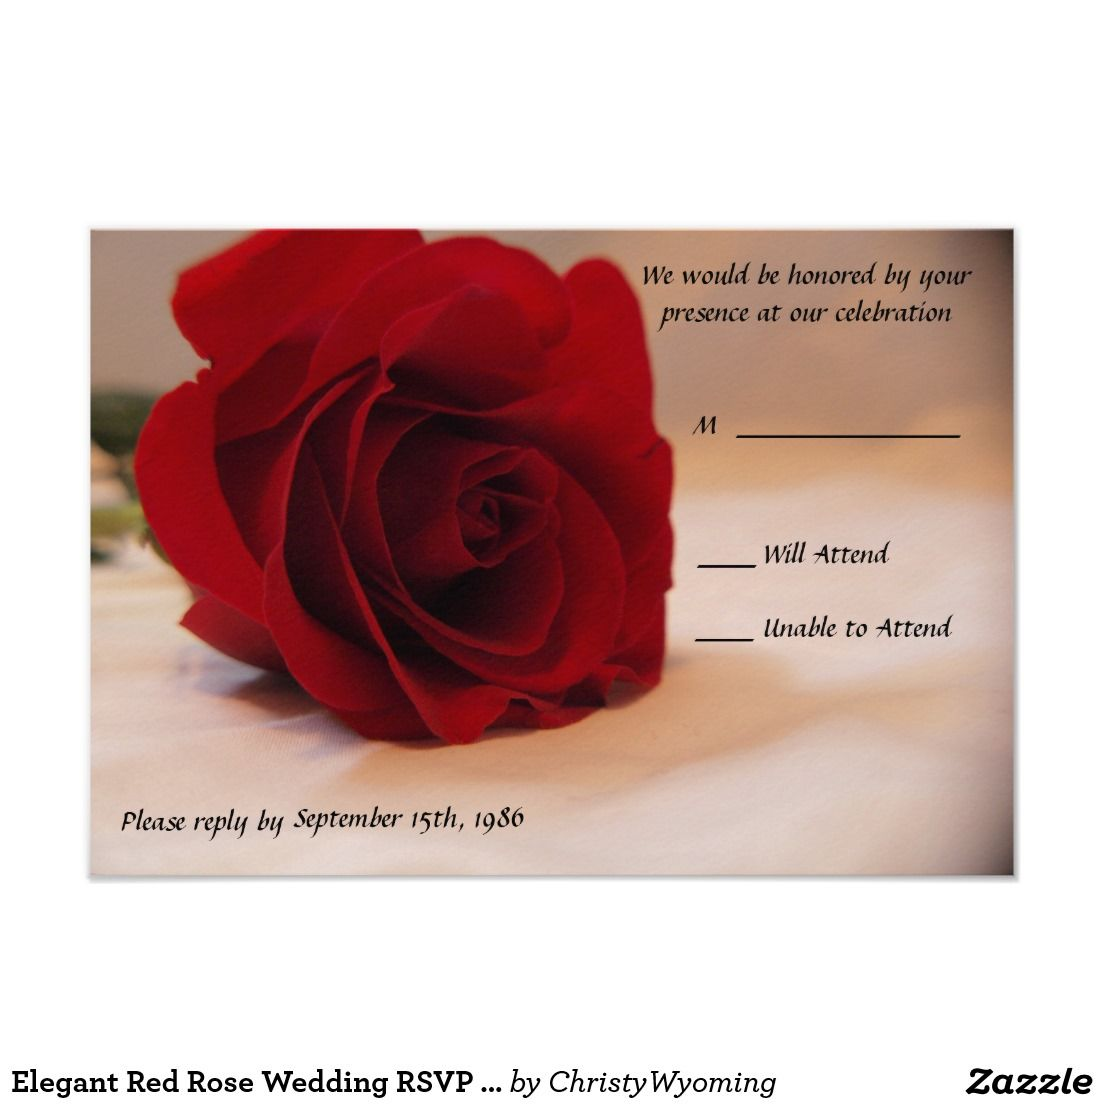 Elegant Red Rose Wedding RSVP Cards | Wedding rsvp, Rsvp and Elegant